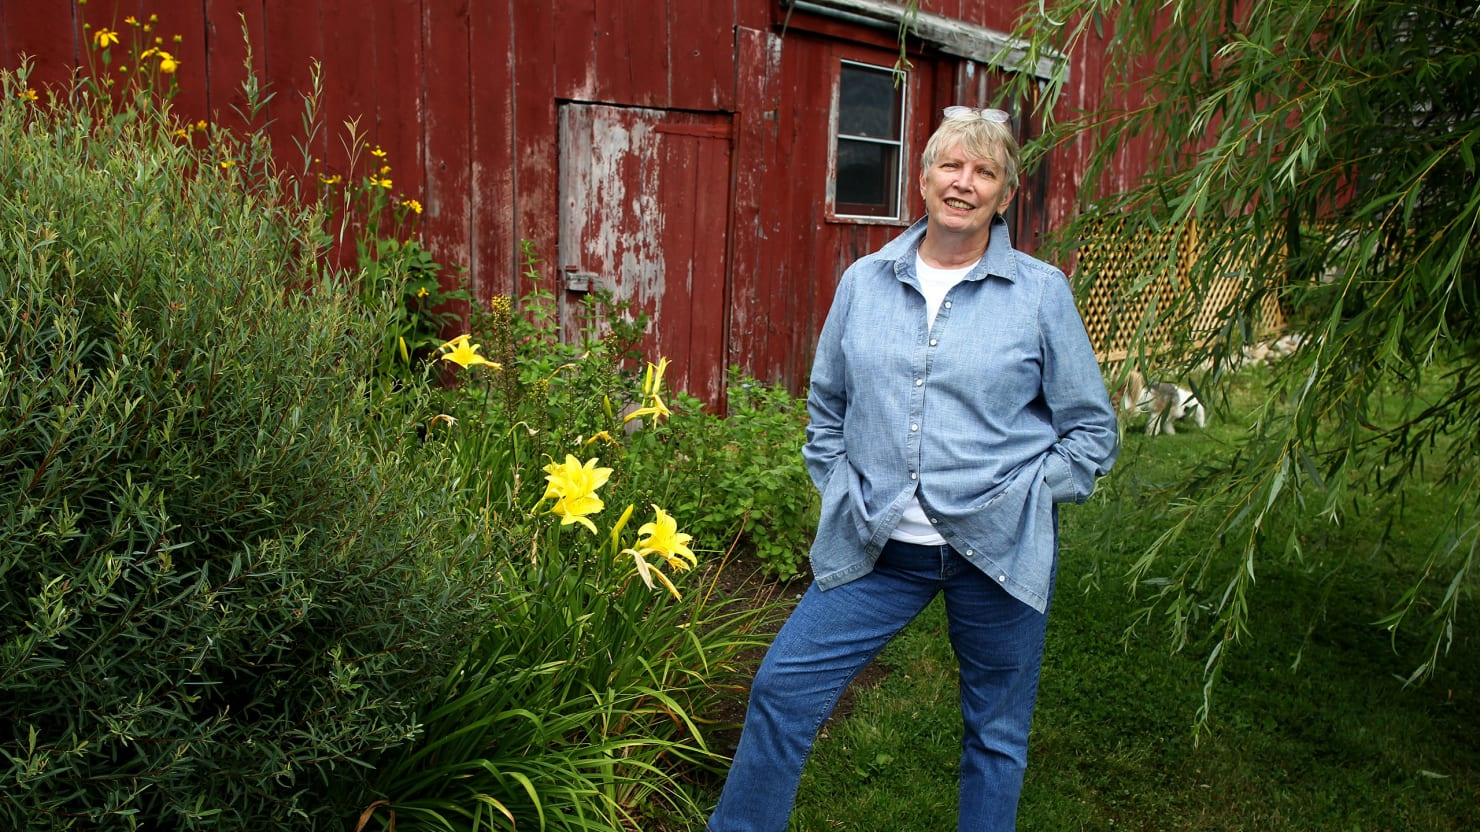 A Trailblazer in YA Dystopian Fiction: An Interview With 'The Giver' Author Lois Lowry